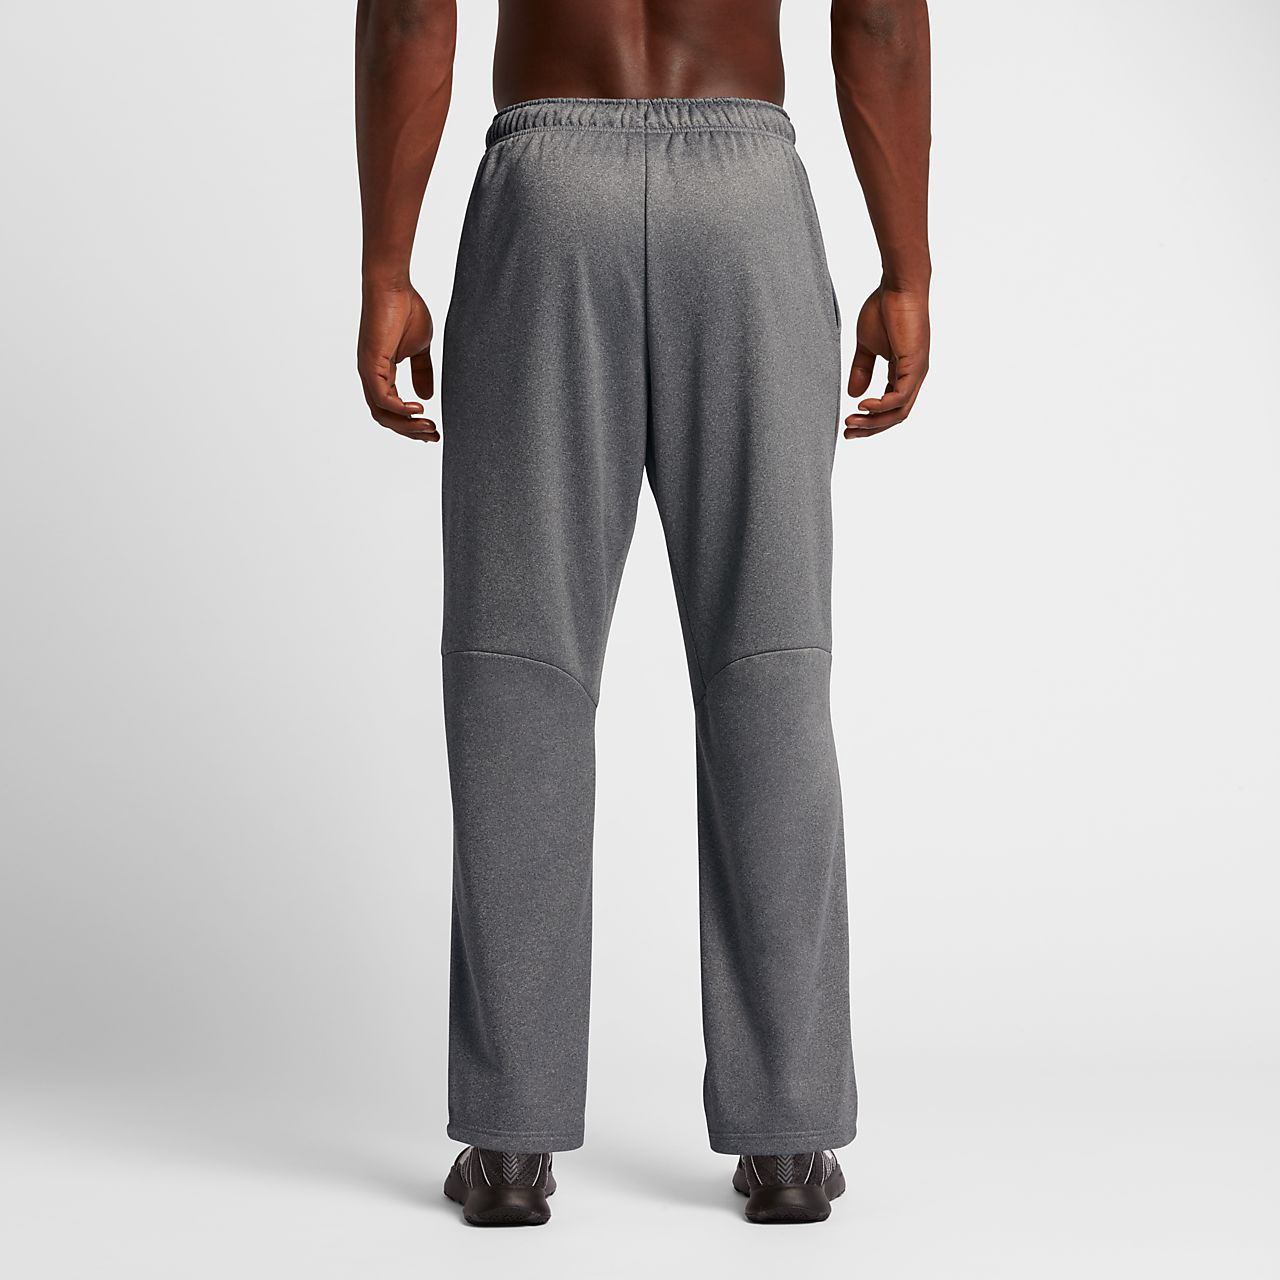 High Quality Nike Modern - Trousers - Black / Anthracite Shop No.60182013